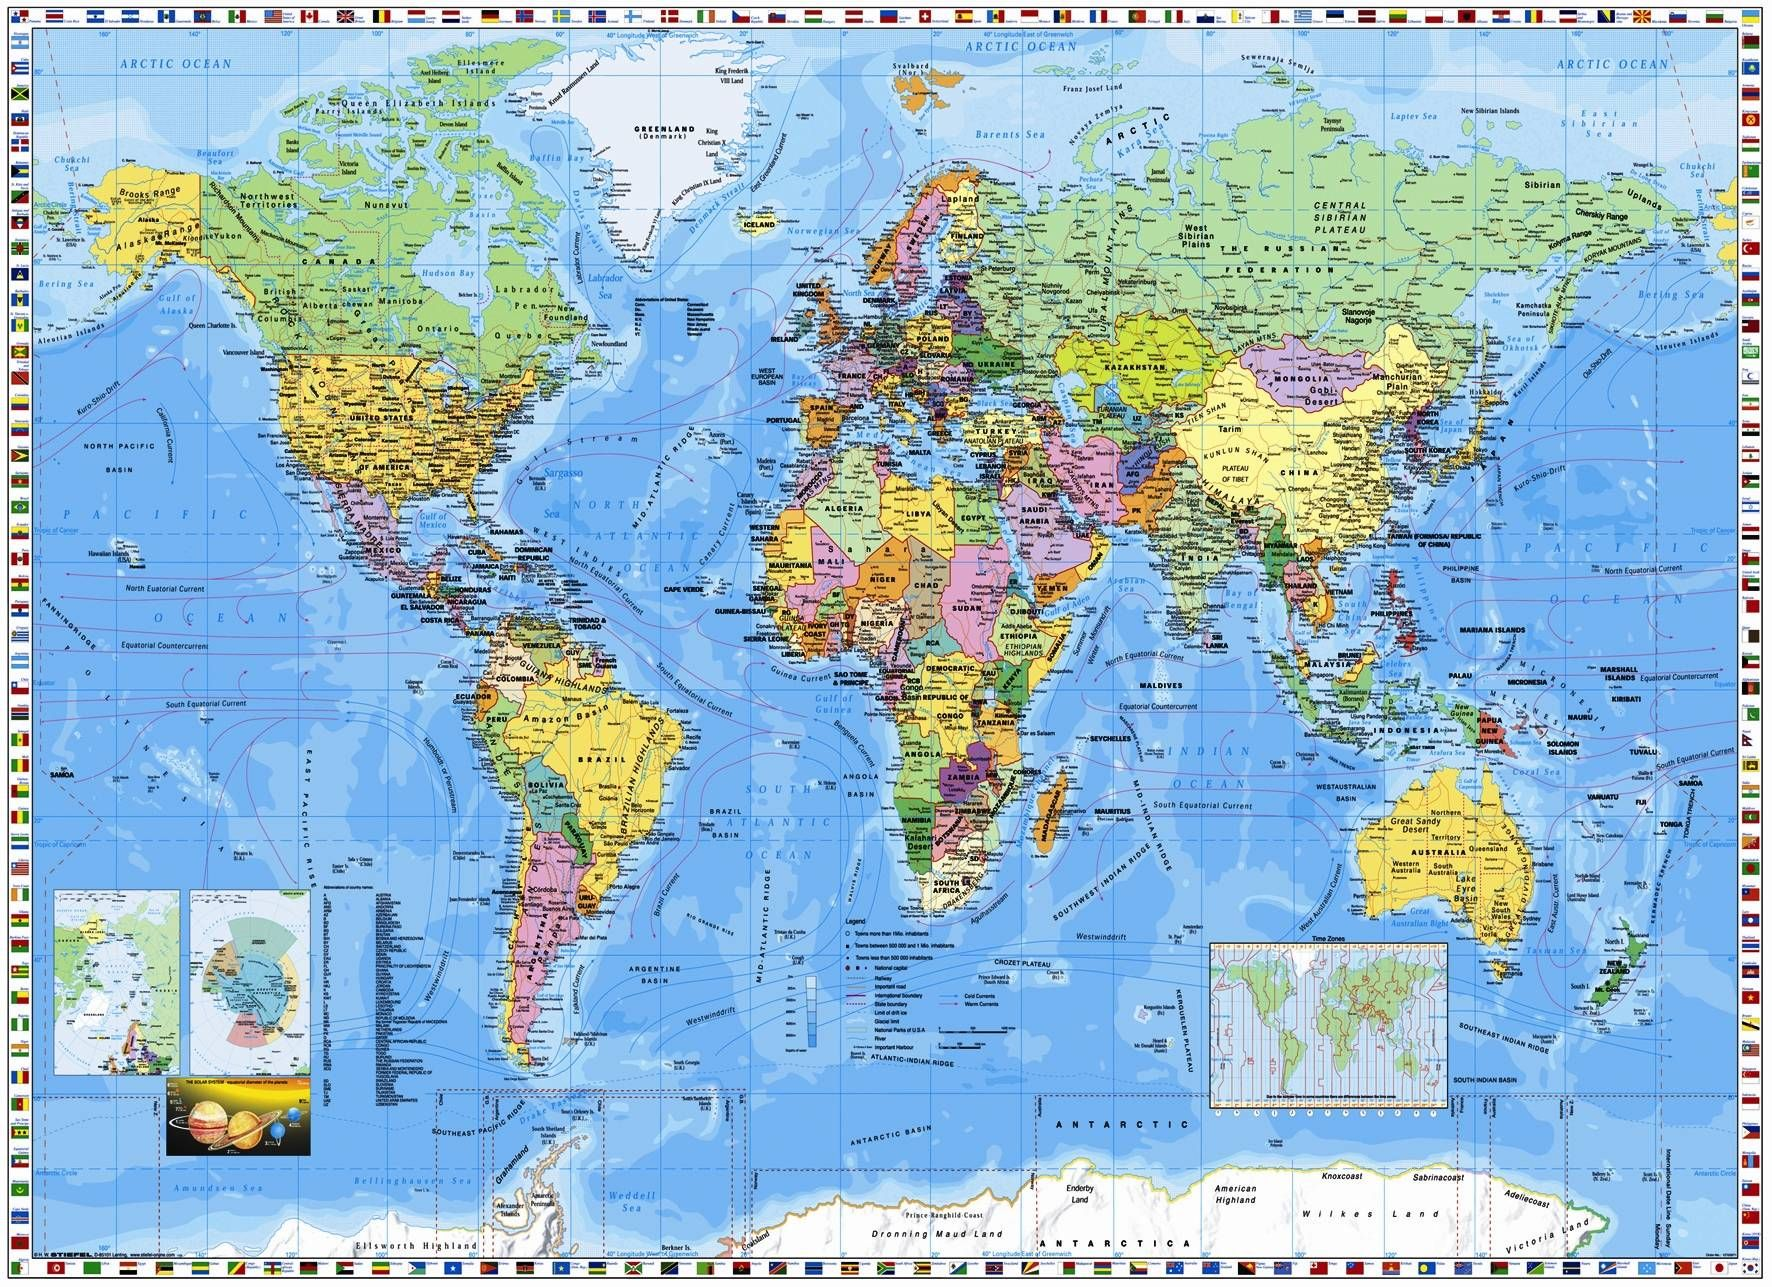 World map wallpapers high resolution wallpaper cave best games world map wallpapers high resolution wallpaper cave gumiabroncs Image collections